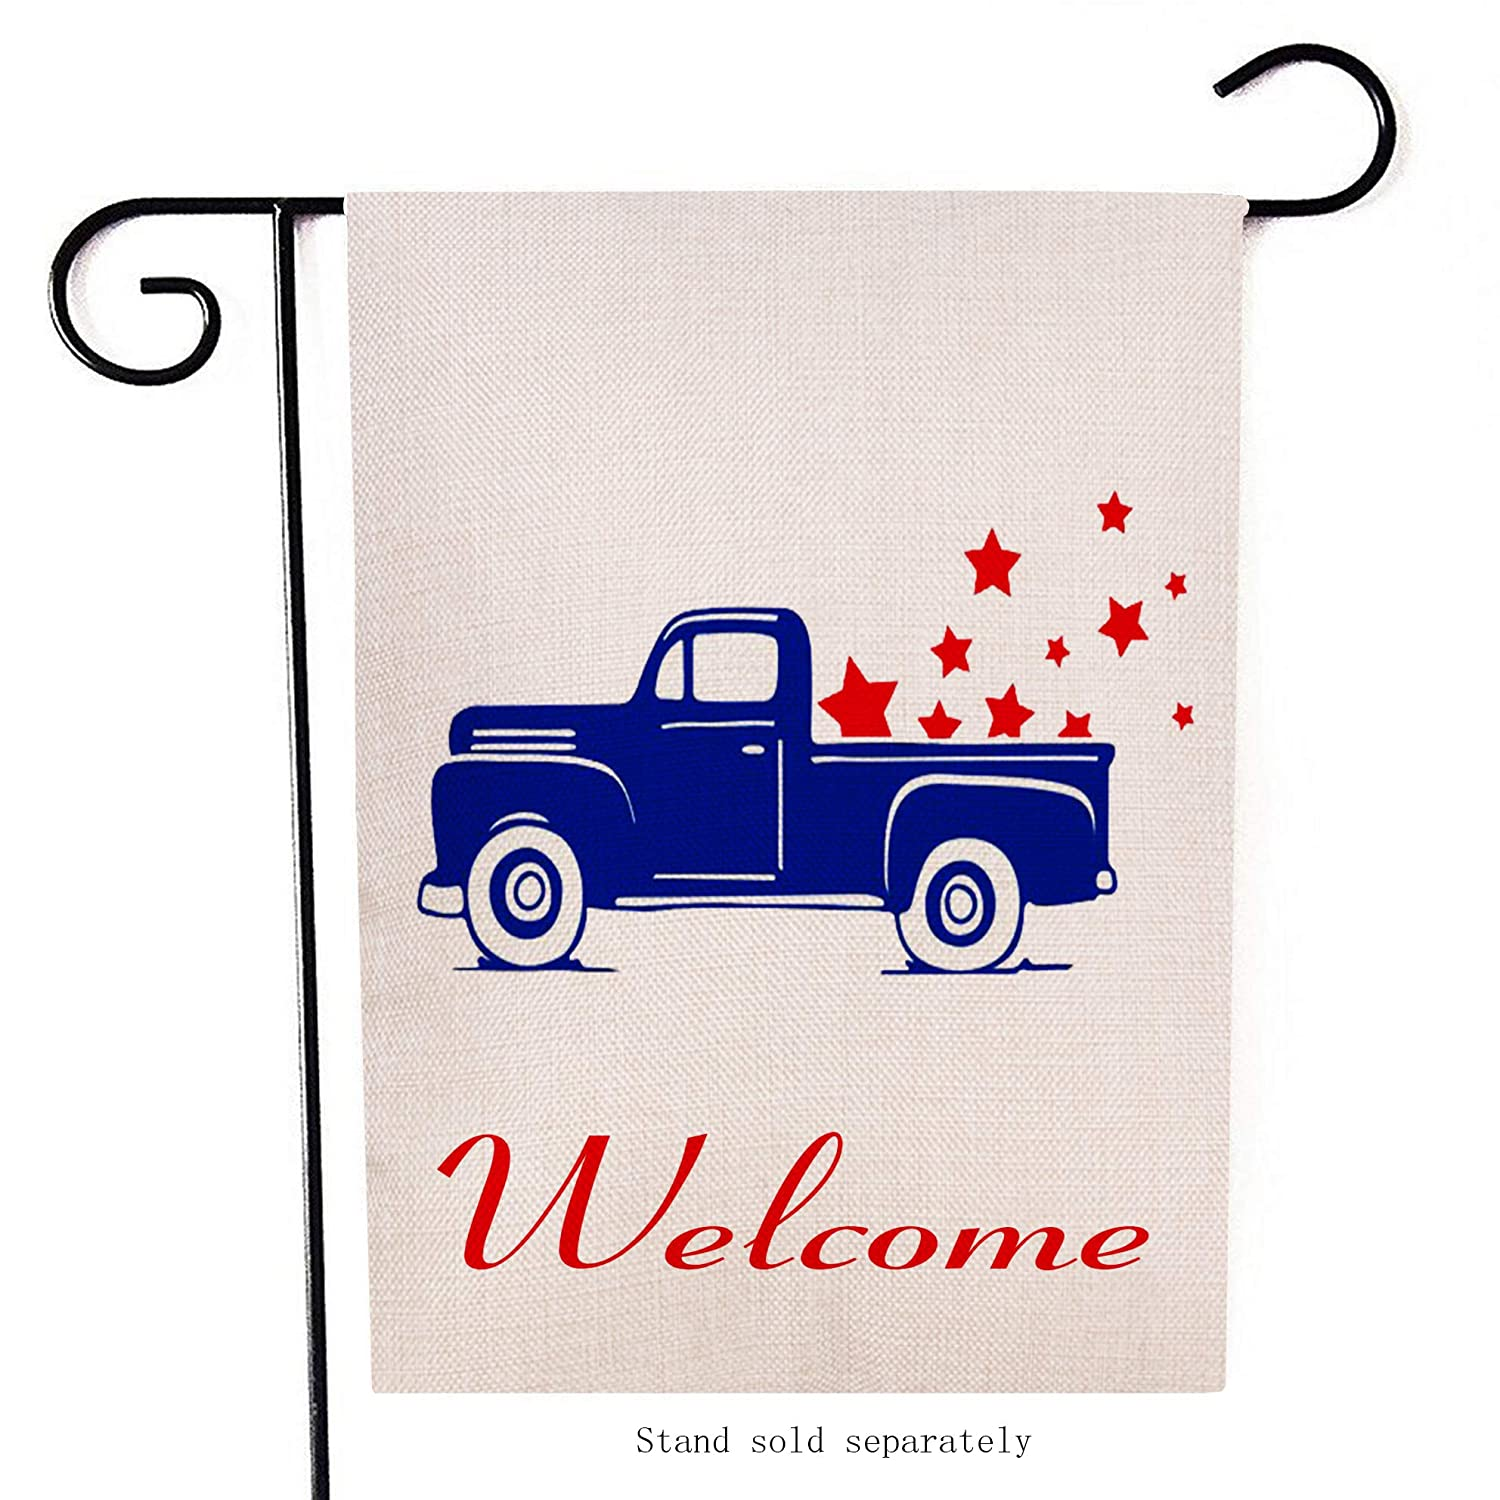 Artofy Home Decorative 4th of July Truck Small Garden Flag Patriotic Double  Sided, American Burlap Welcome USA Farm Pickup House Yard Decoration,